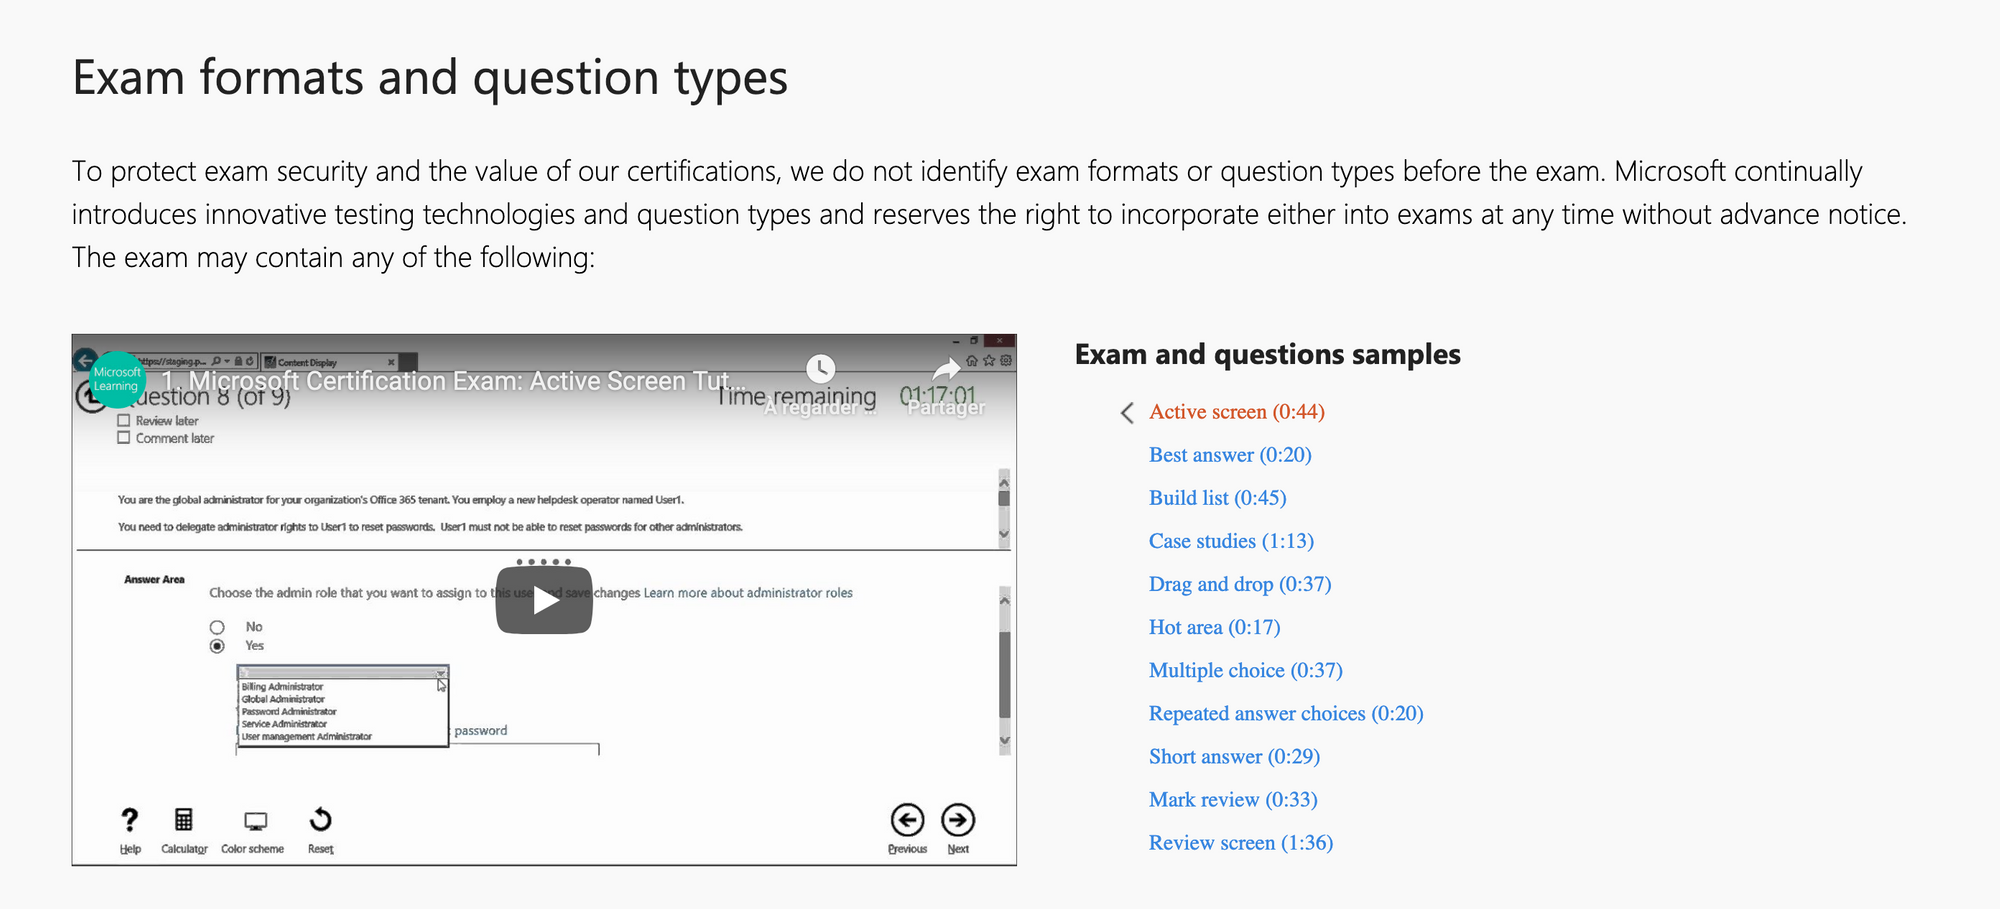 Exam formats and question types